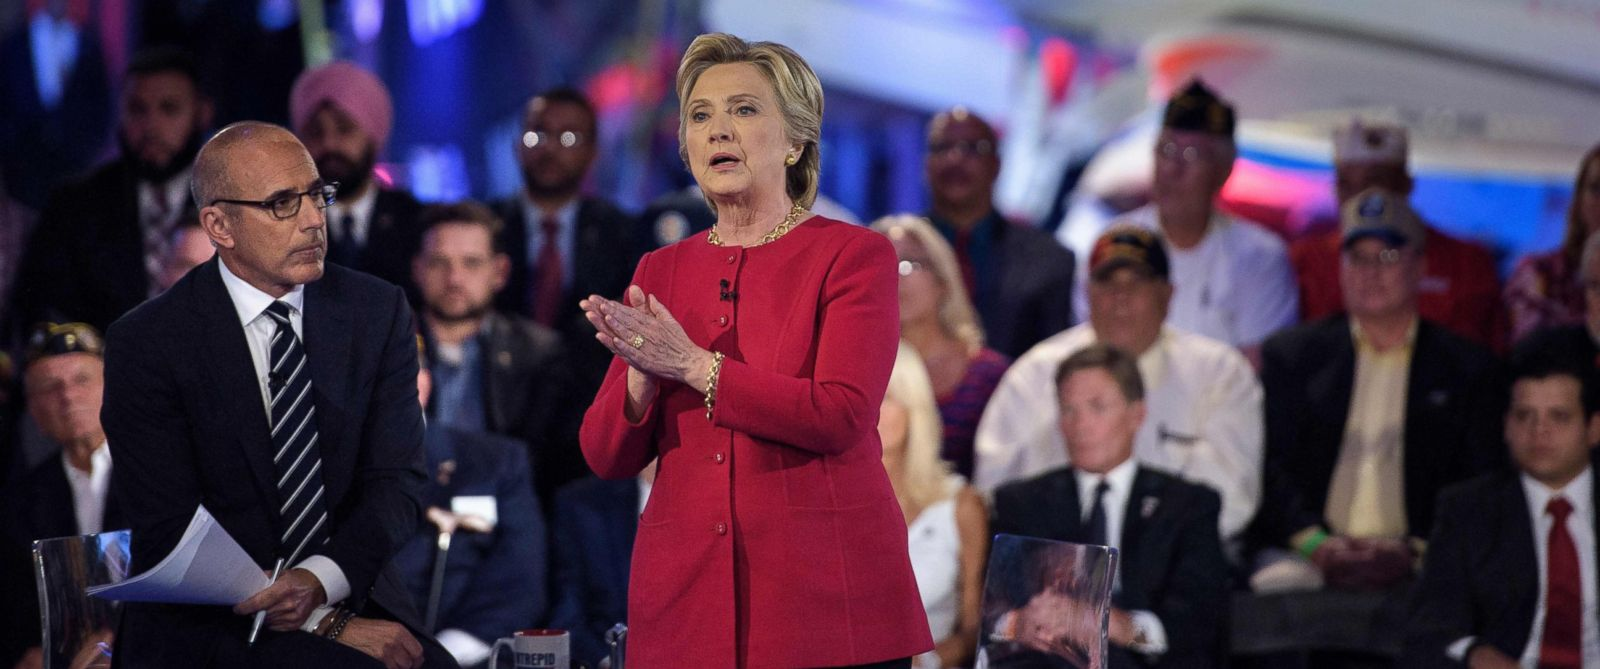 PHOTO: Matt Lauer listens as Democratic presidential nominee Hillary Clinton speaks during a veterans forum at the air and space museum aboard the aircraft carrier USS Intrepid on September 7, 2016 in New York, NY.